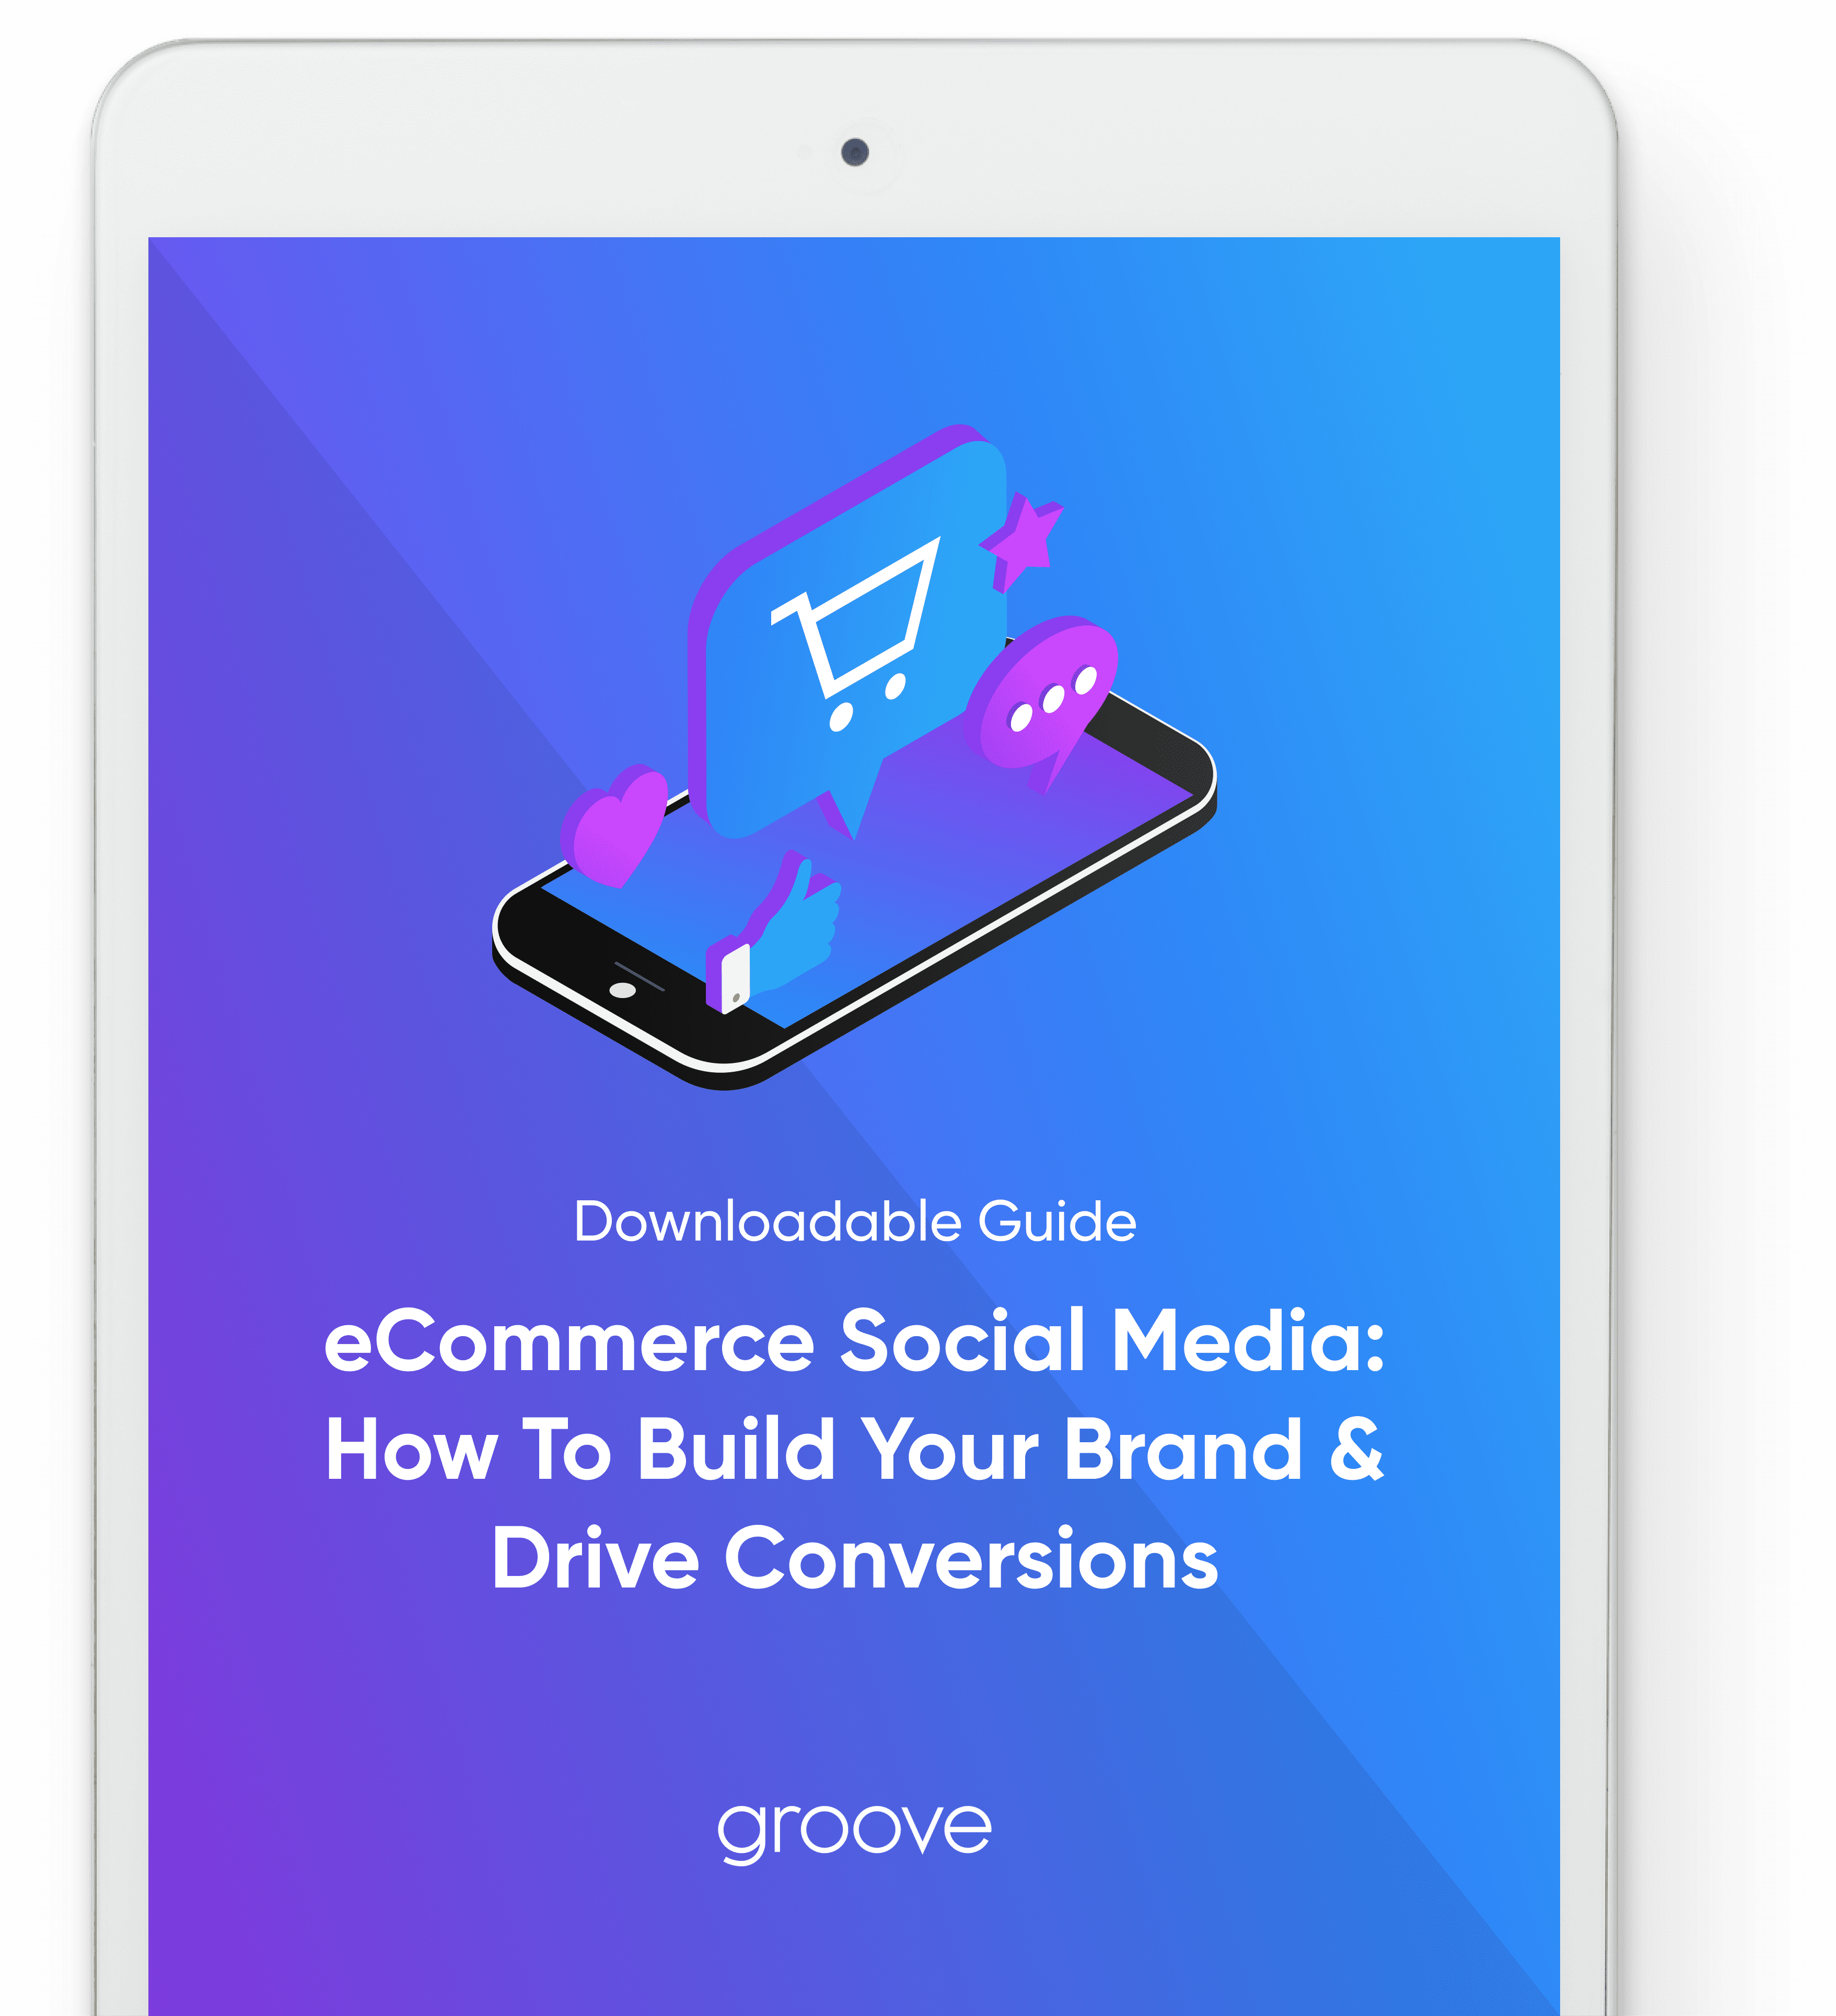 eCommerce Social Media: How To Build Your Brand & Drive Conversions